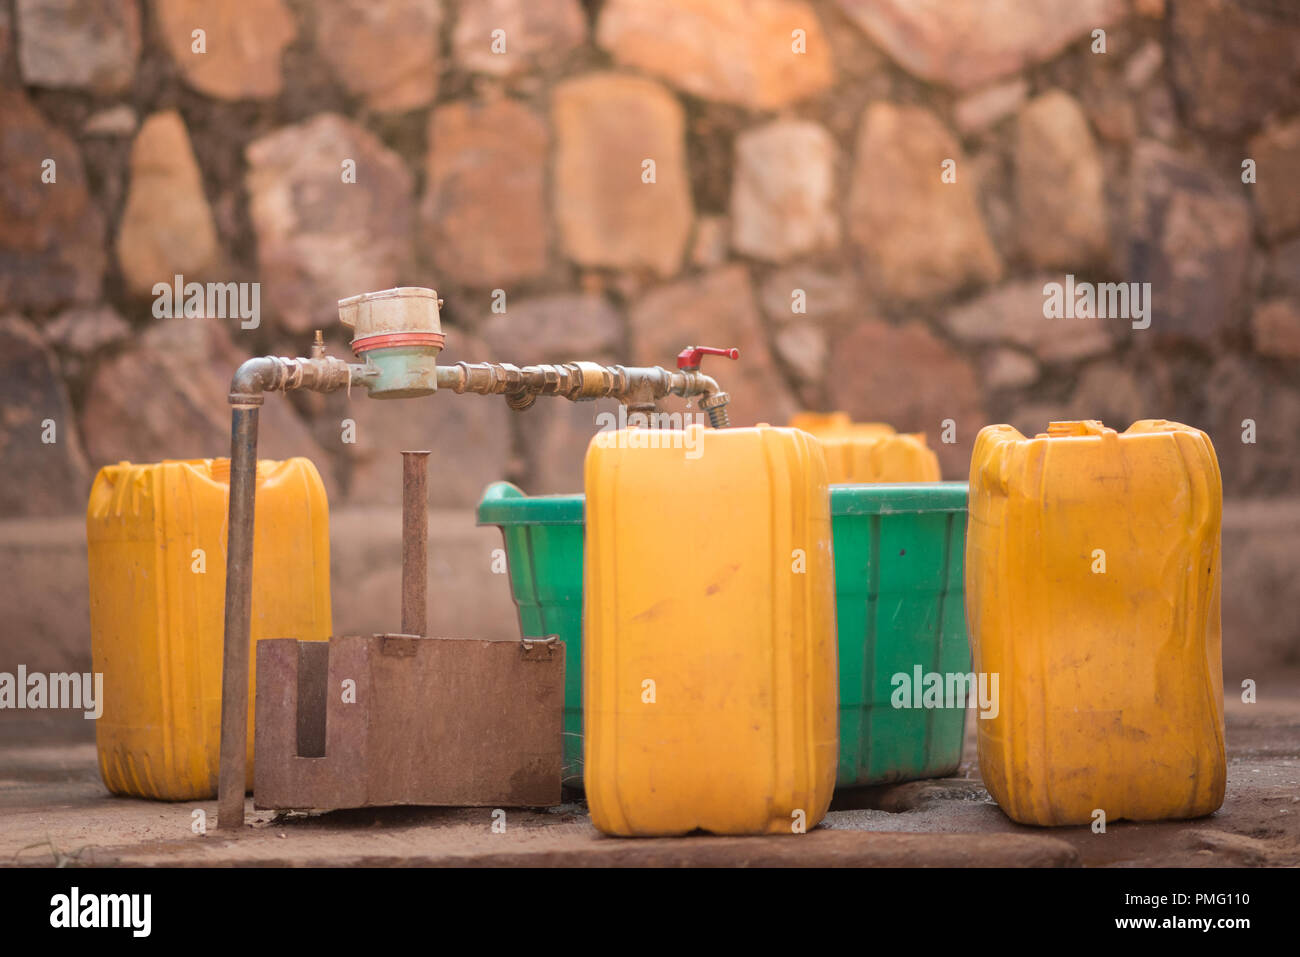 Jerrycans and buckets next to a tap to collect water in Nyamirambo, a semi-rural part of Kigali, Rwanda - Stock Image